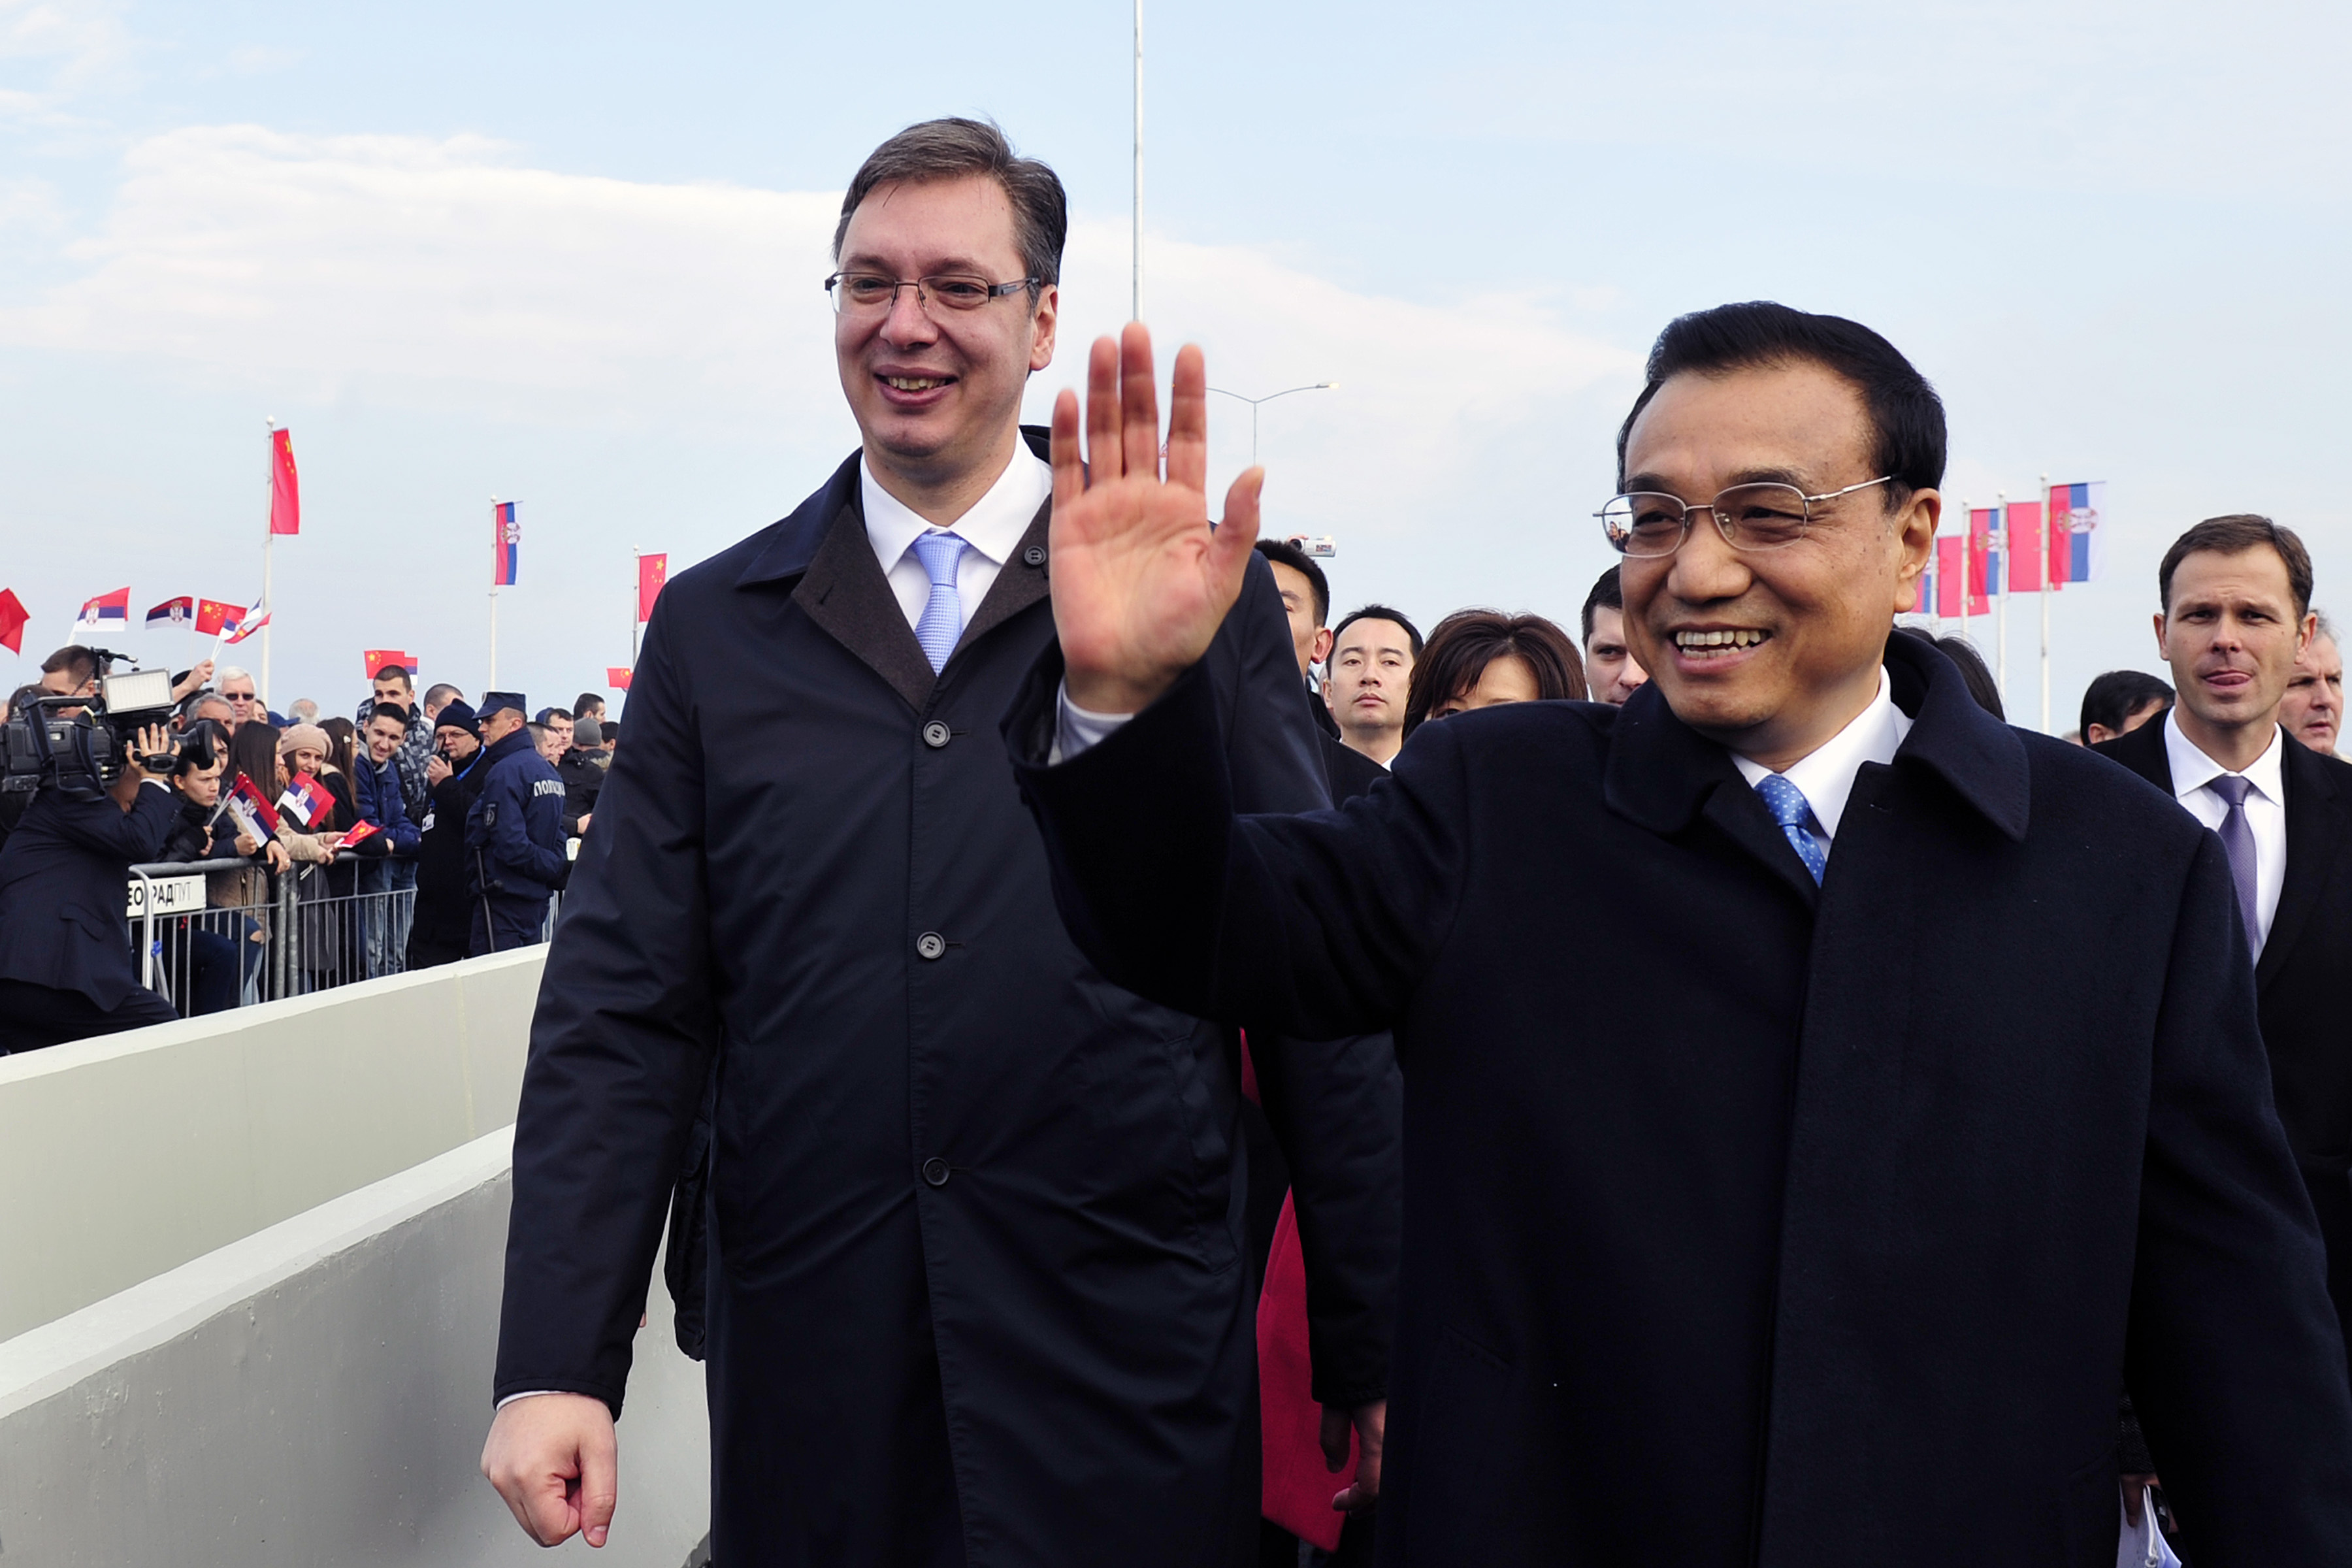 Early elections in Serbia a possibility